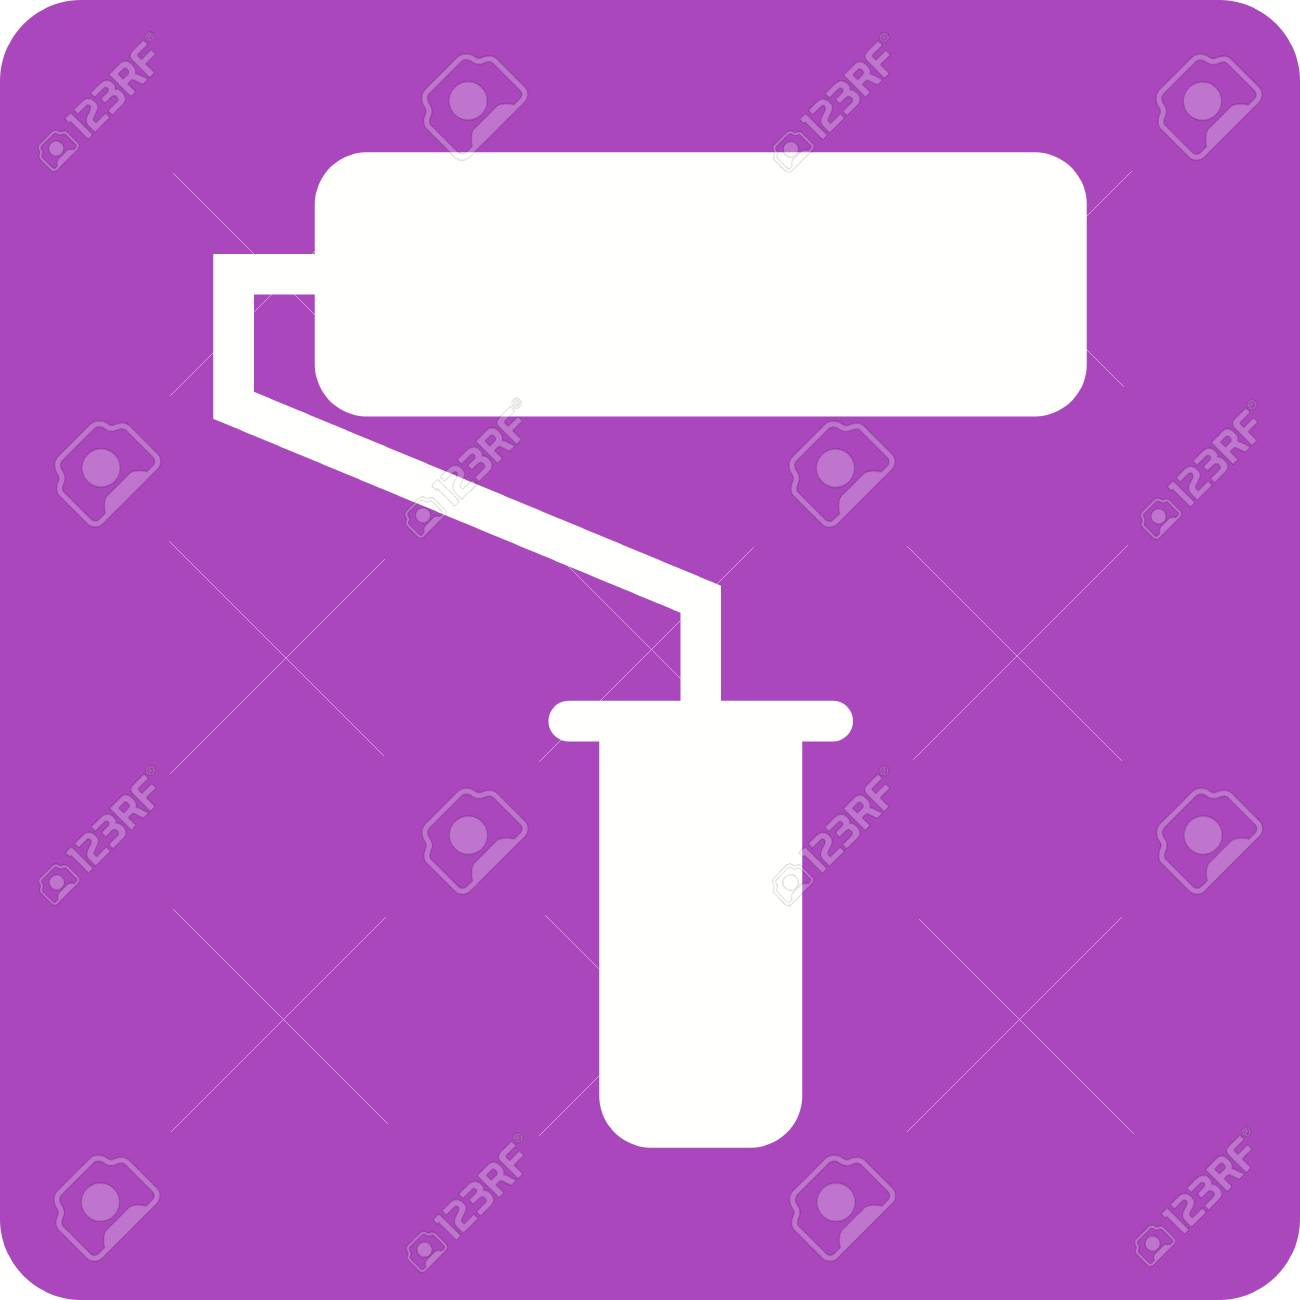 Paint, roller, painting icon vector image  Can also be used for